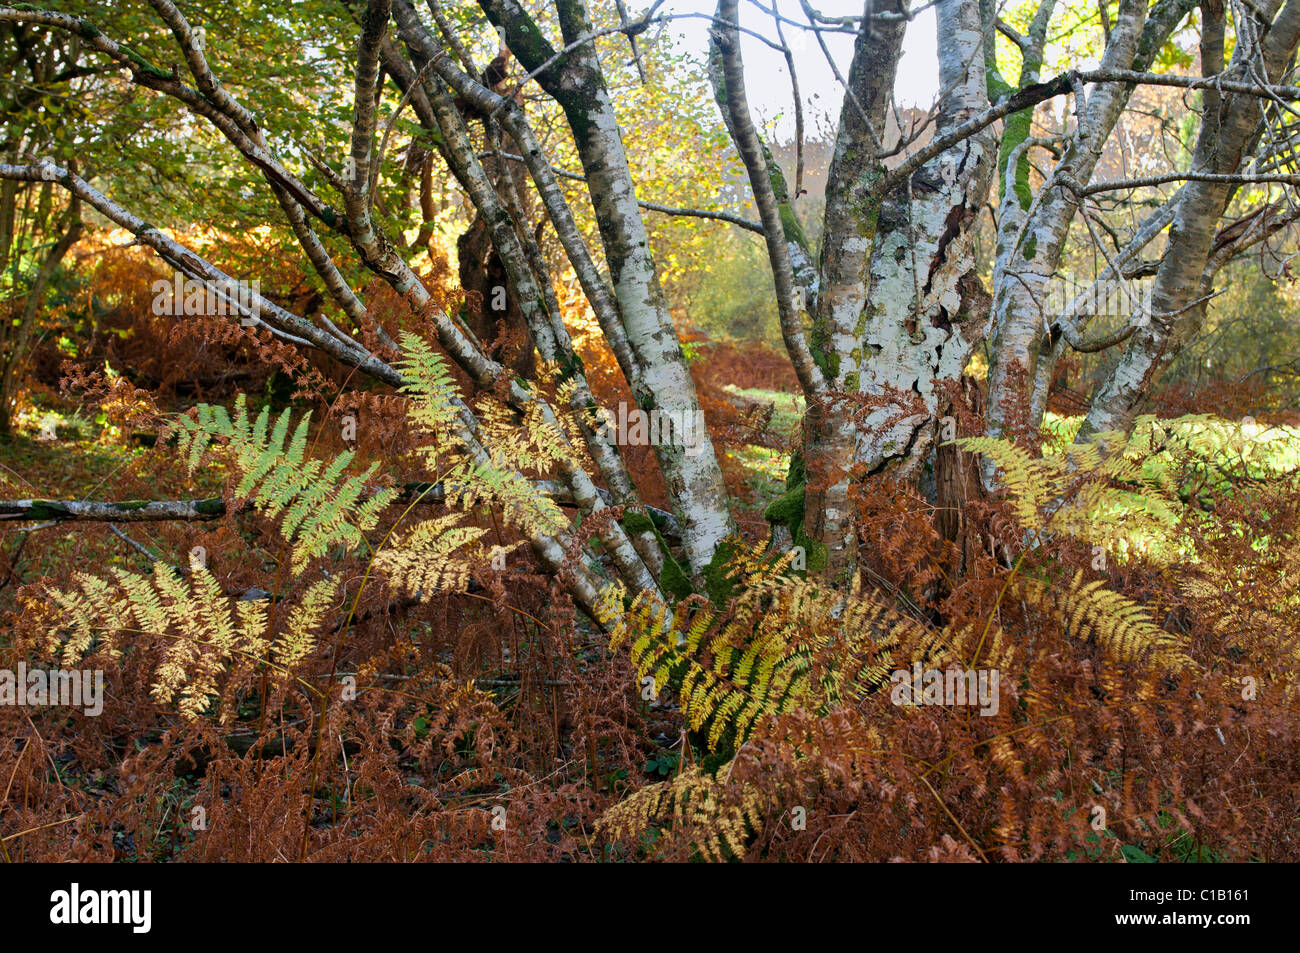 Cluster of coppiced hazel and bracken in autumn colour - Stock Image